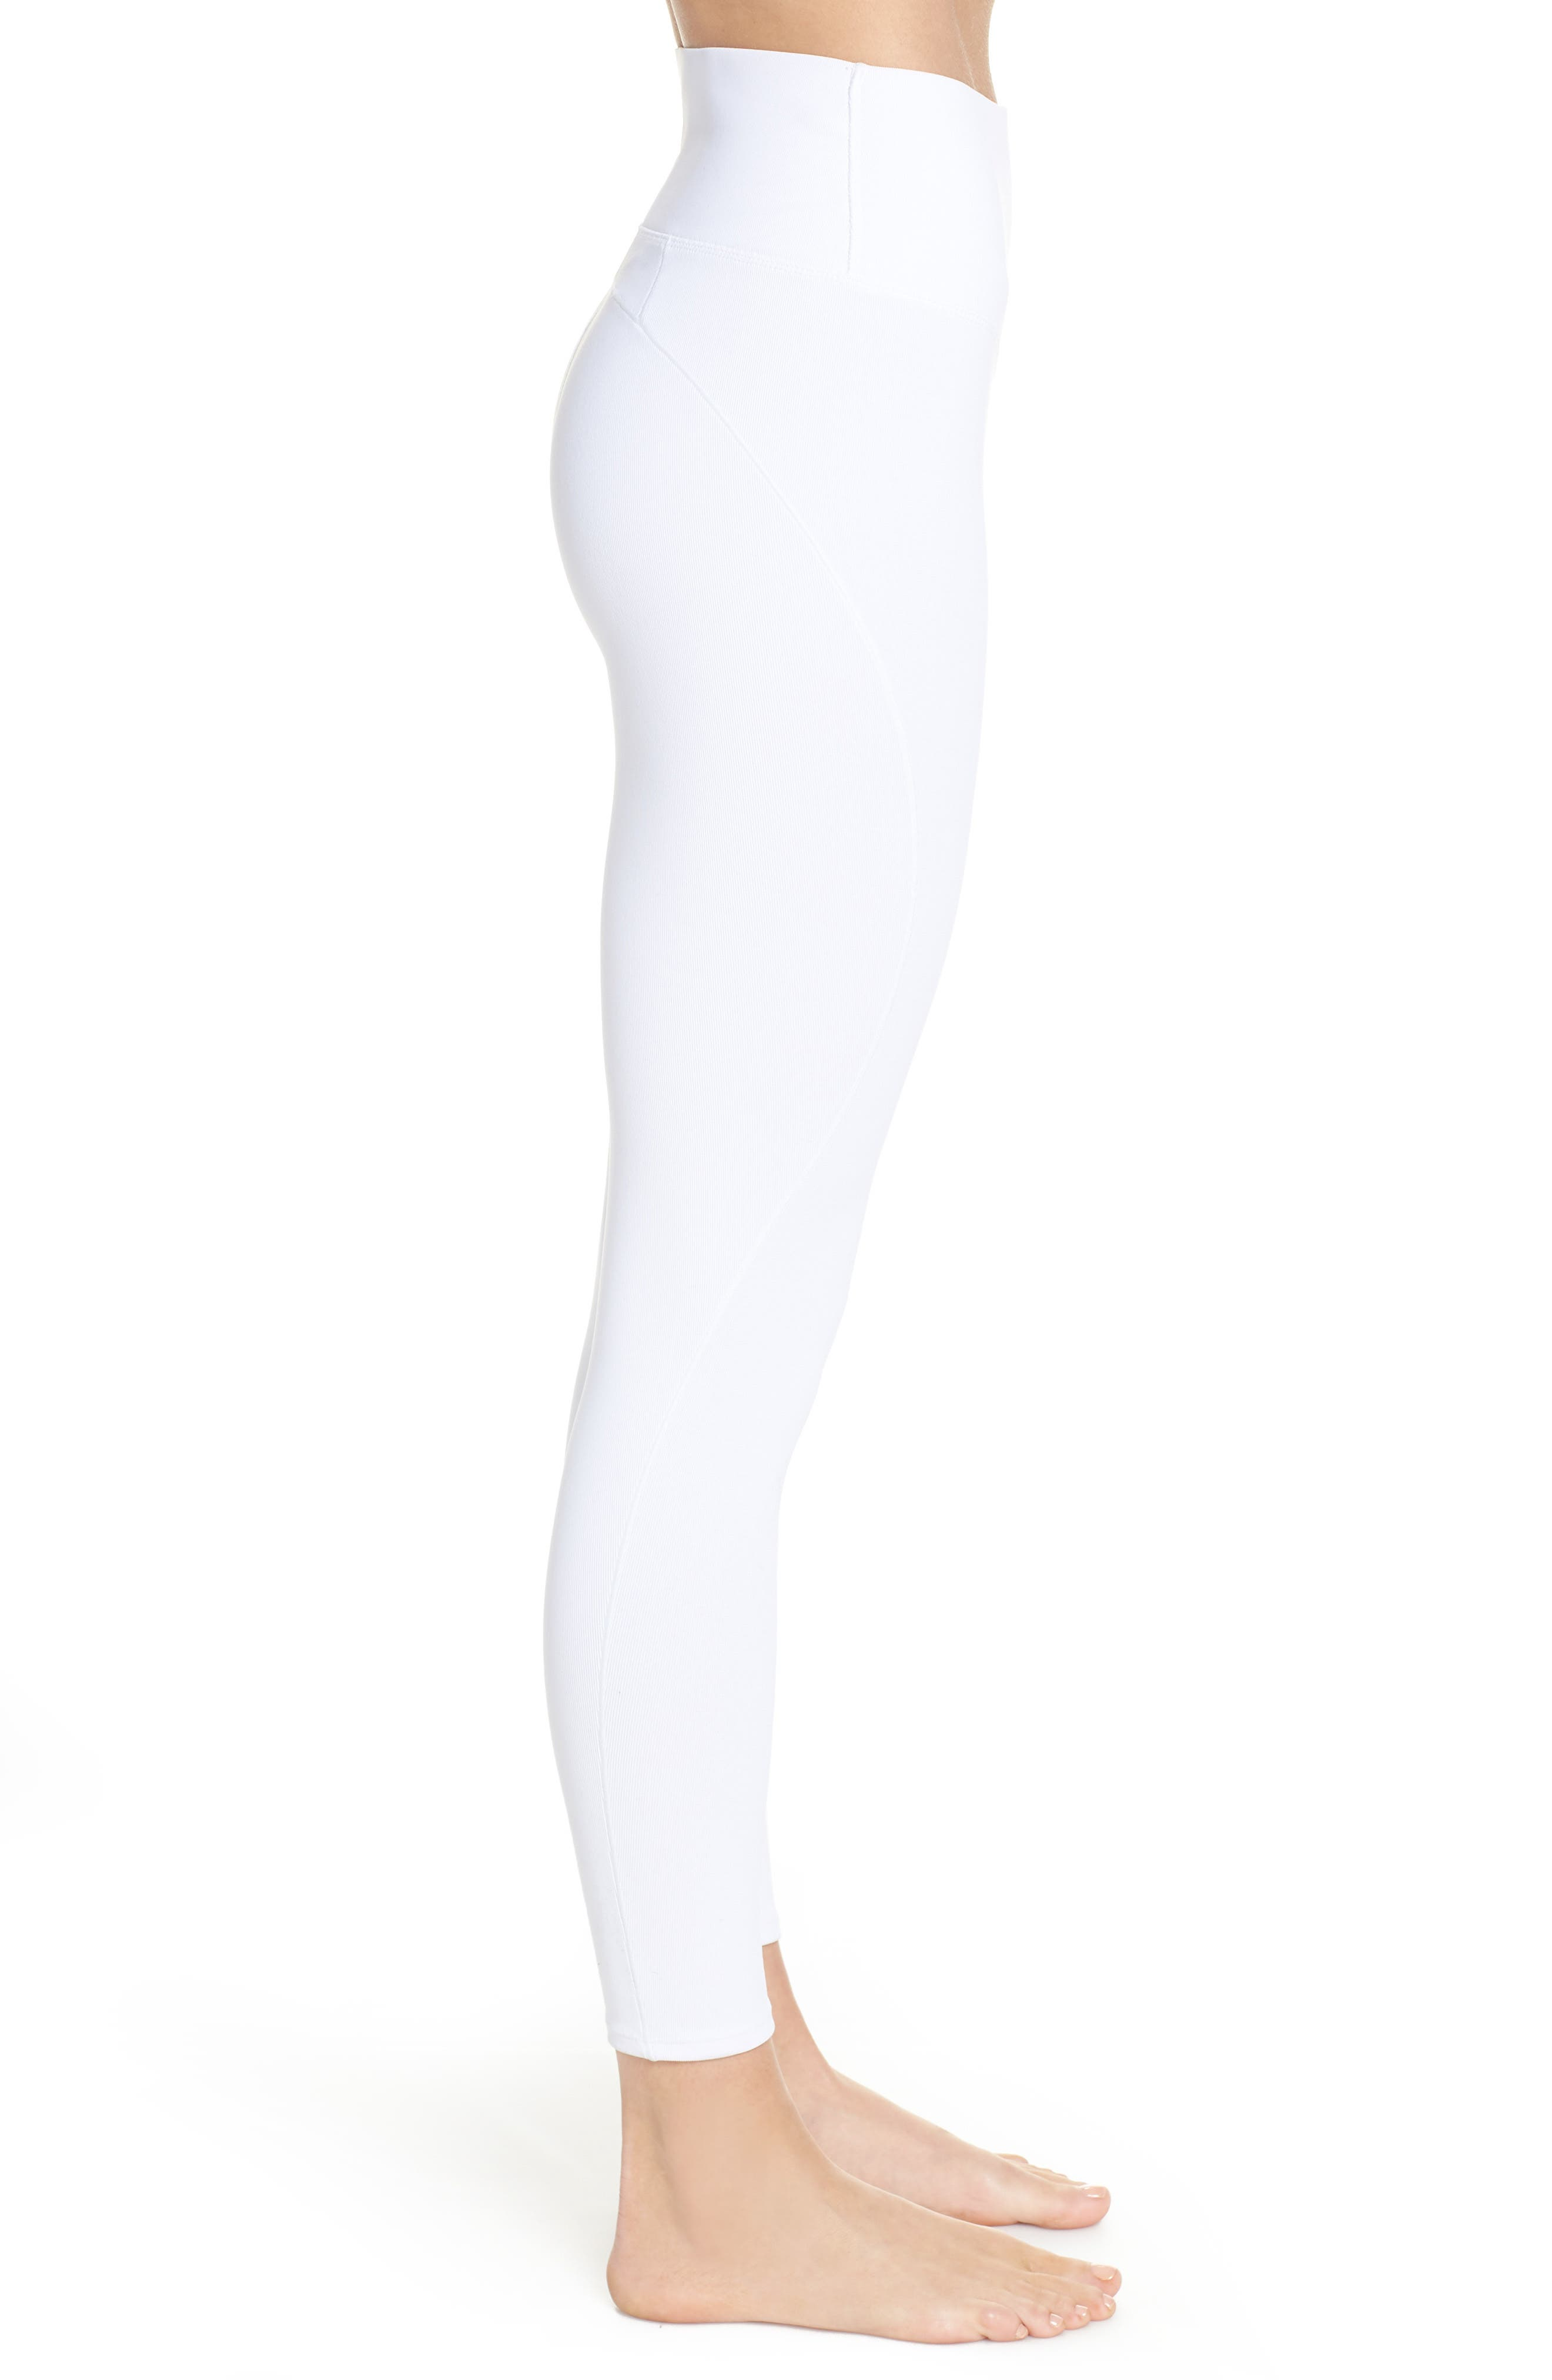 Free People FP Movement Formation High Waist Ankle Leggings,                             Alternate thumbnail 3, color,                             WHITE